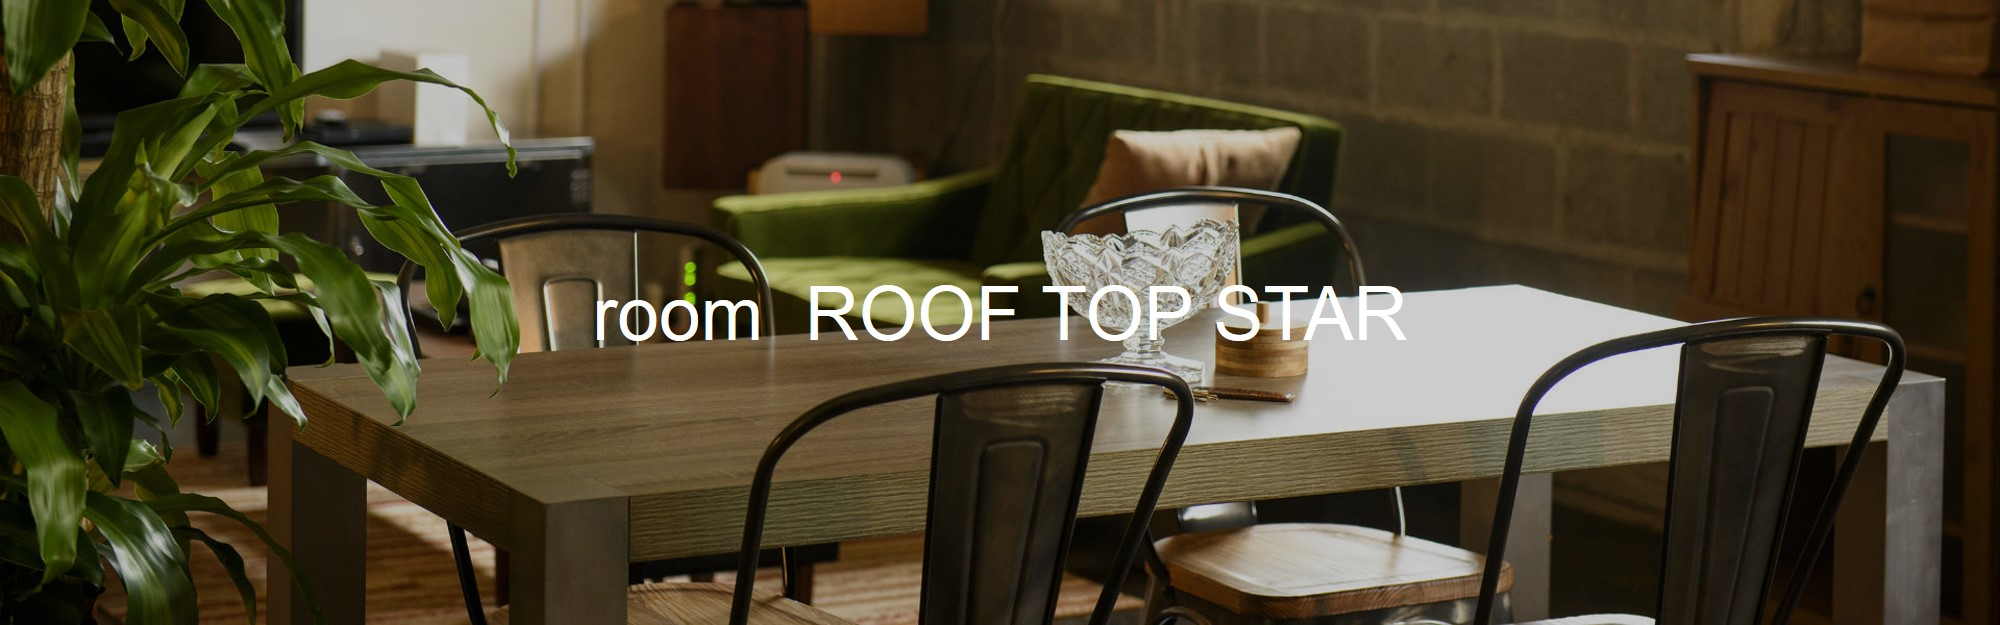 room ROOF TOP STAR